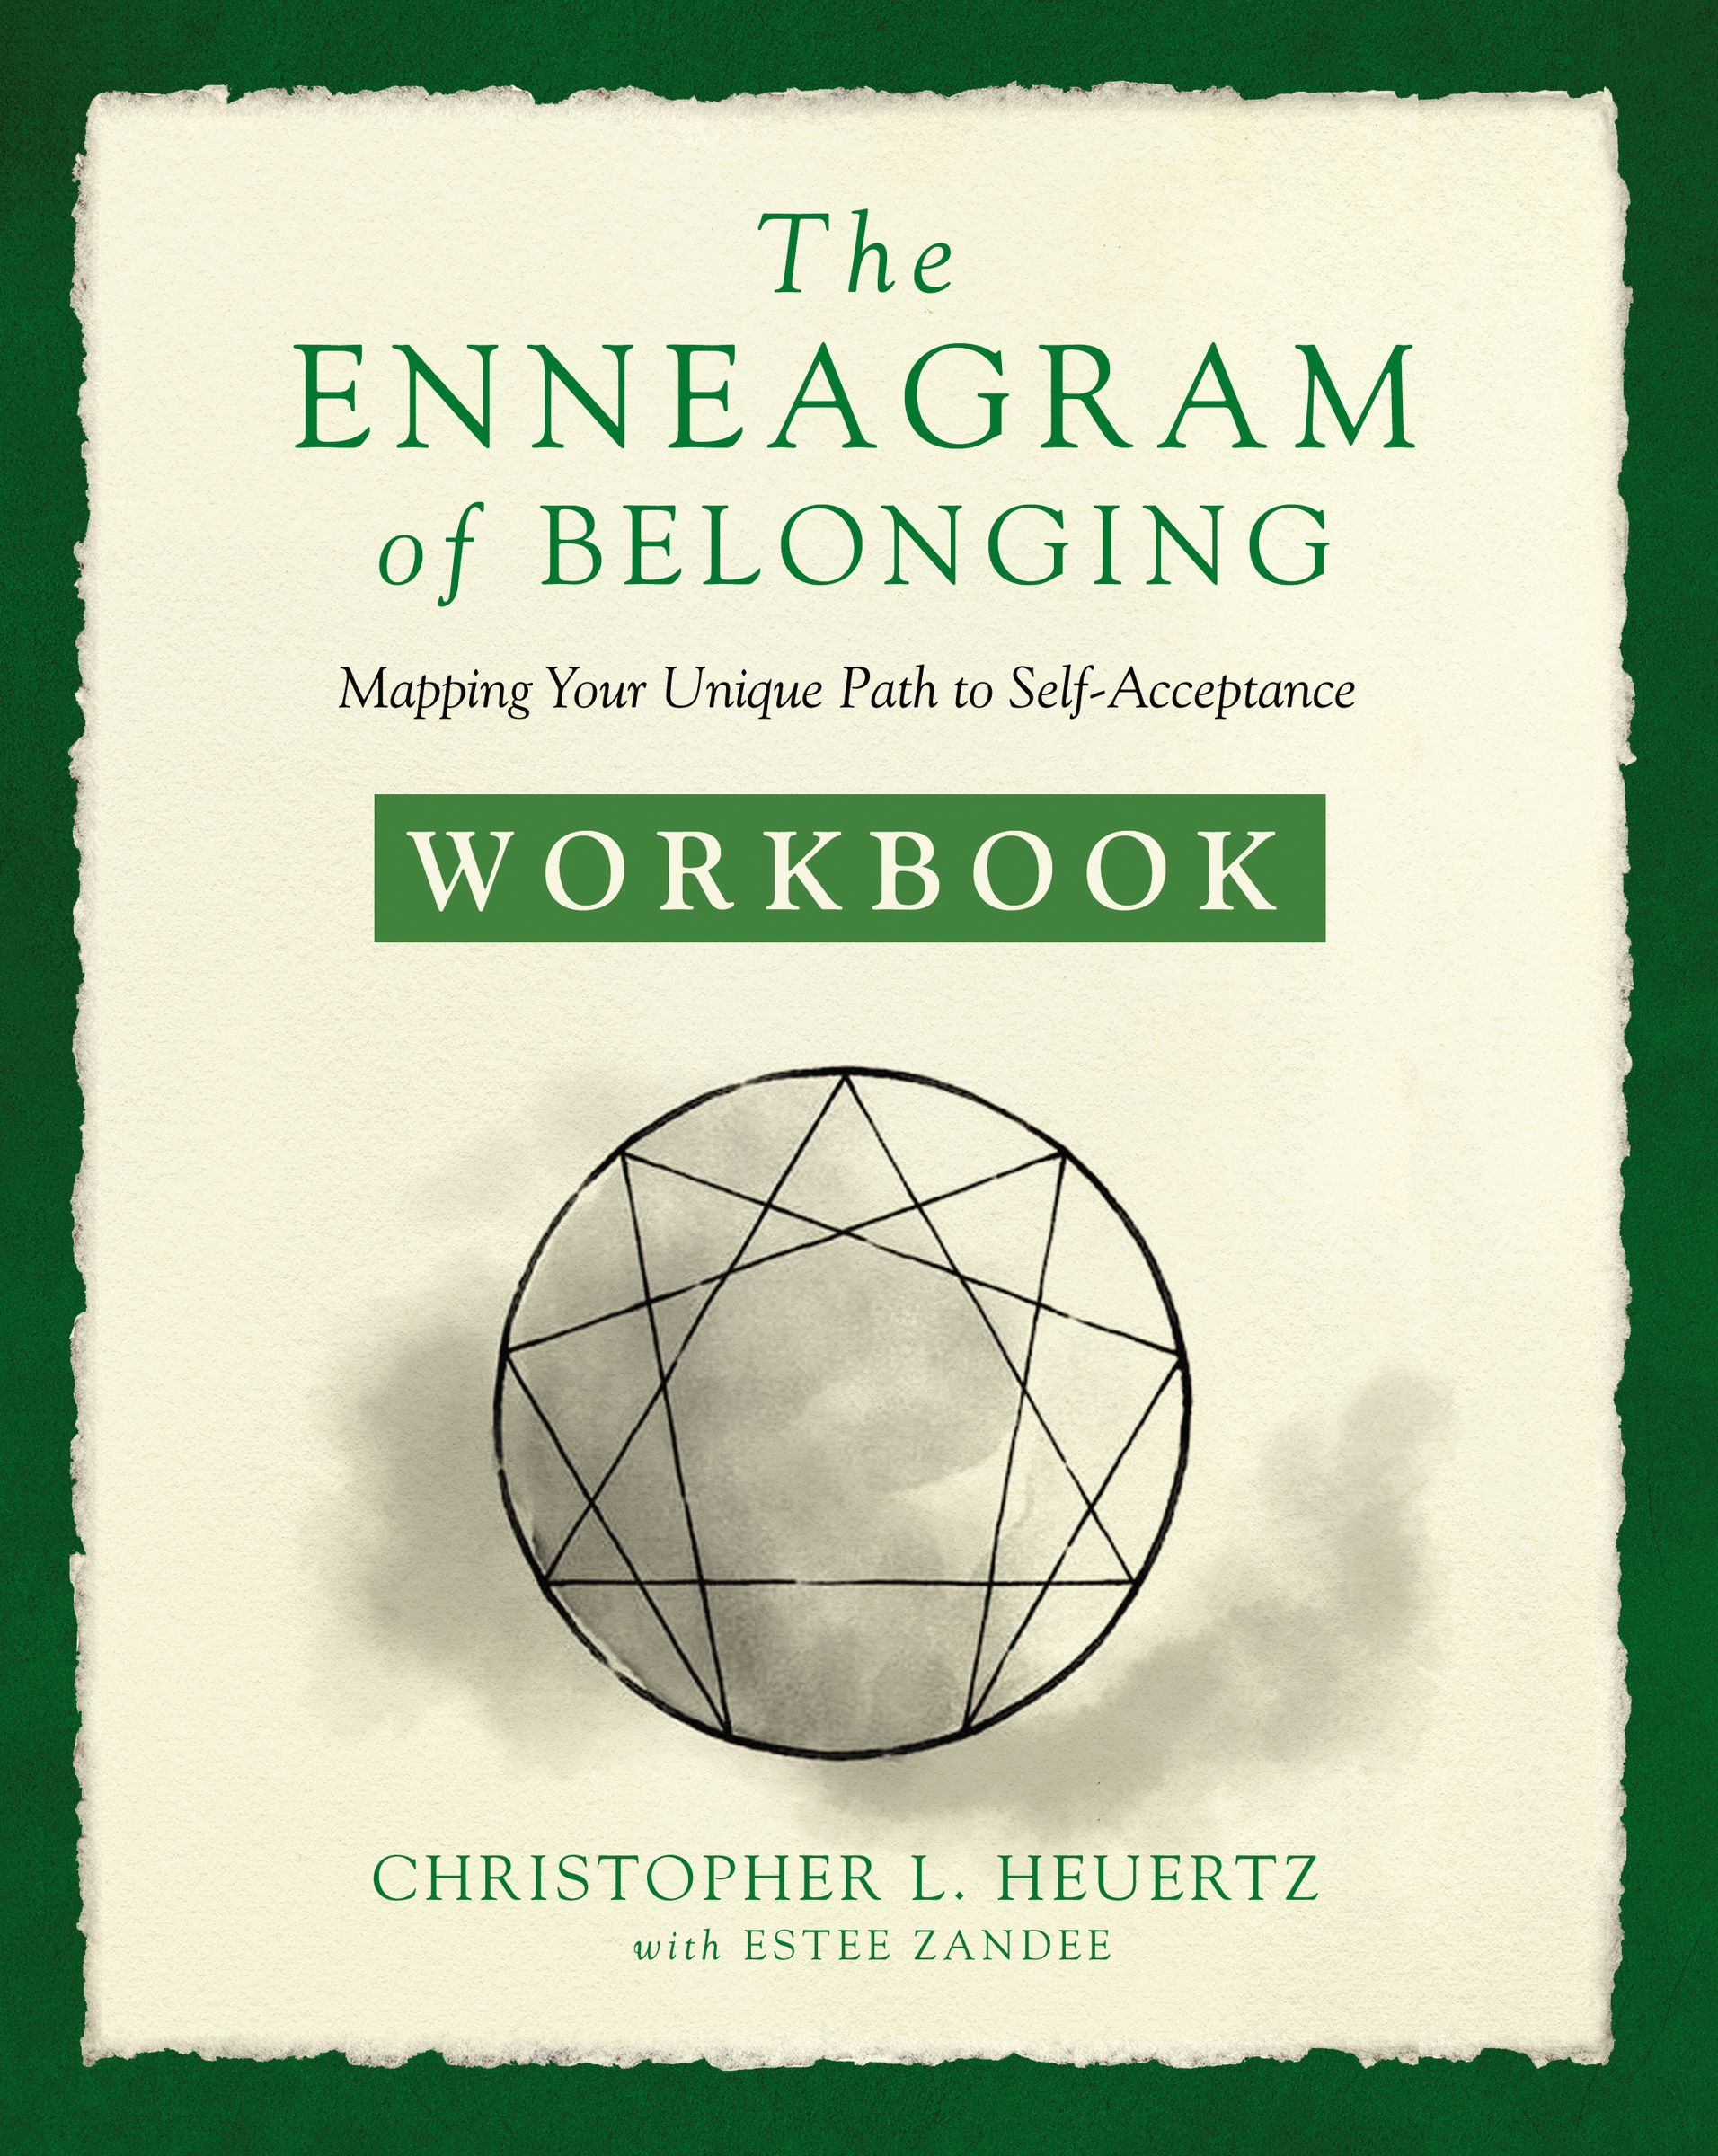 [PDF] [EPUB] The Enneagram of Belonging Workbook: Mapping Your Unique Path to Self-Acceptance Download by Christopher L. Heuertz